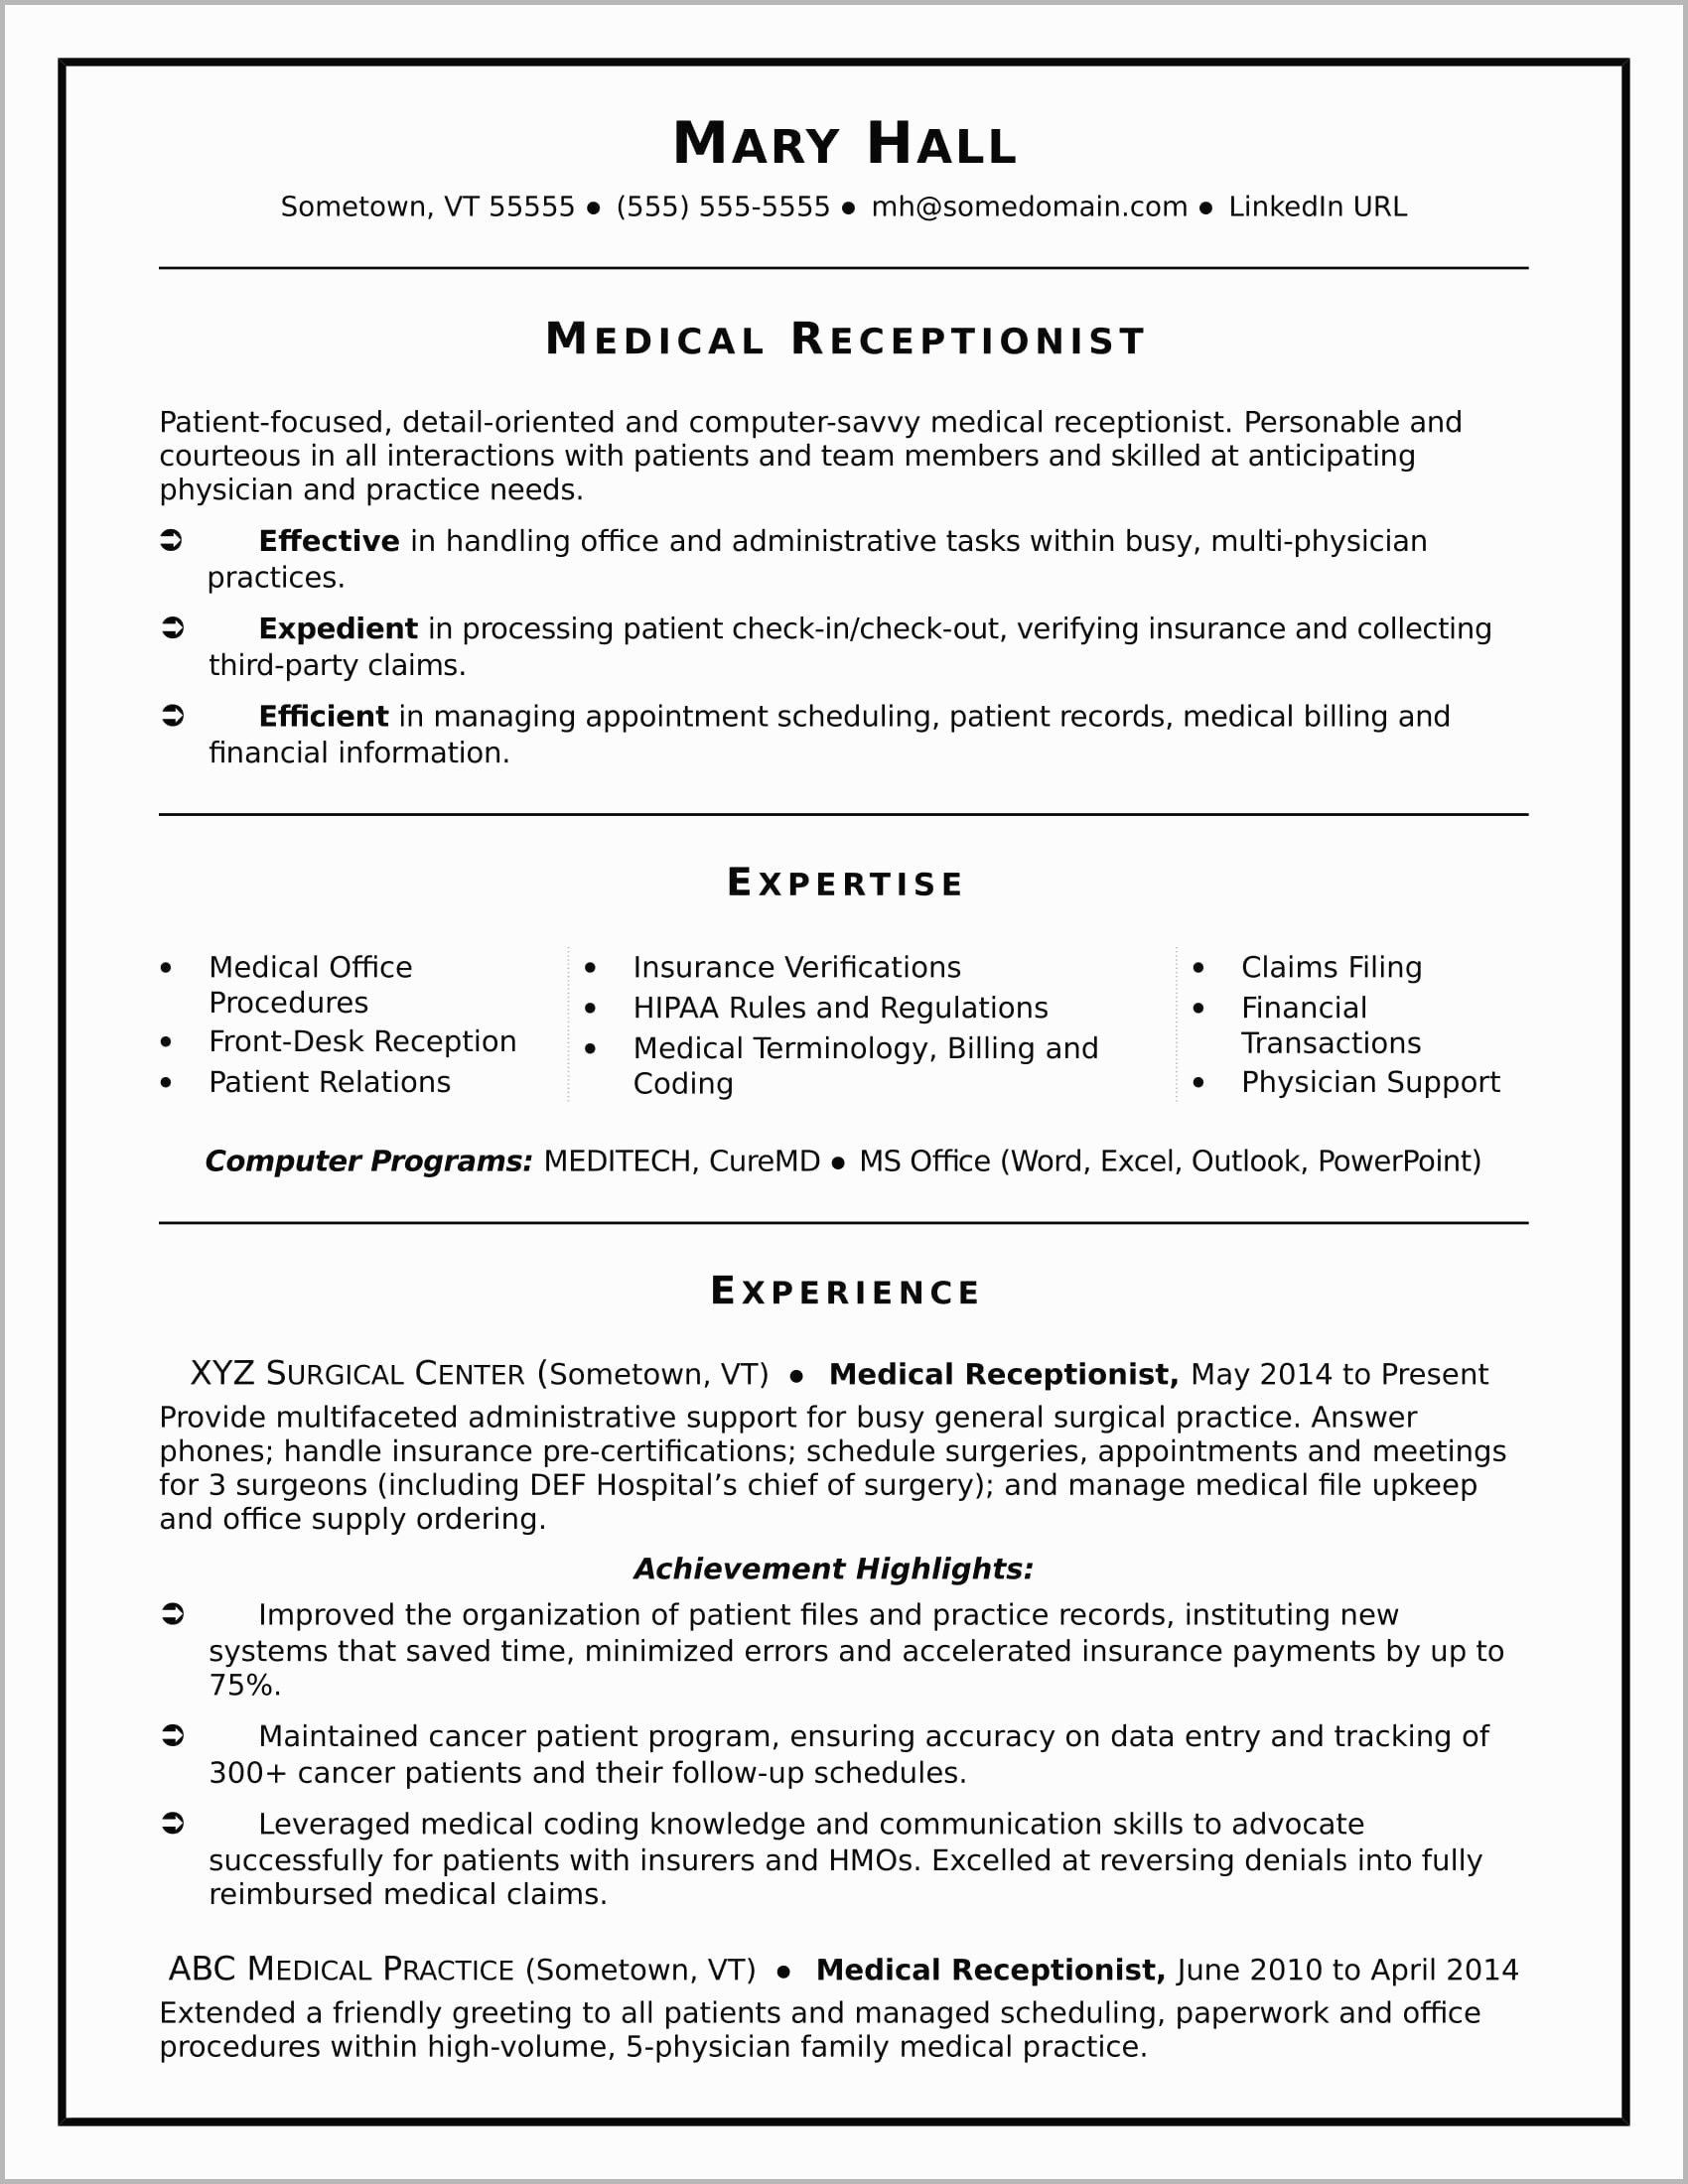 Medical Receptionist Resume Template - Medical Secretary Resume Sample Best Medical Receptionist Resume